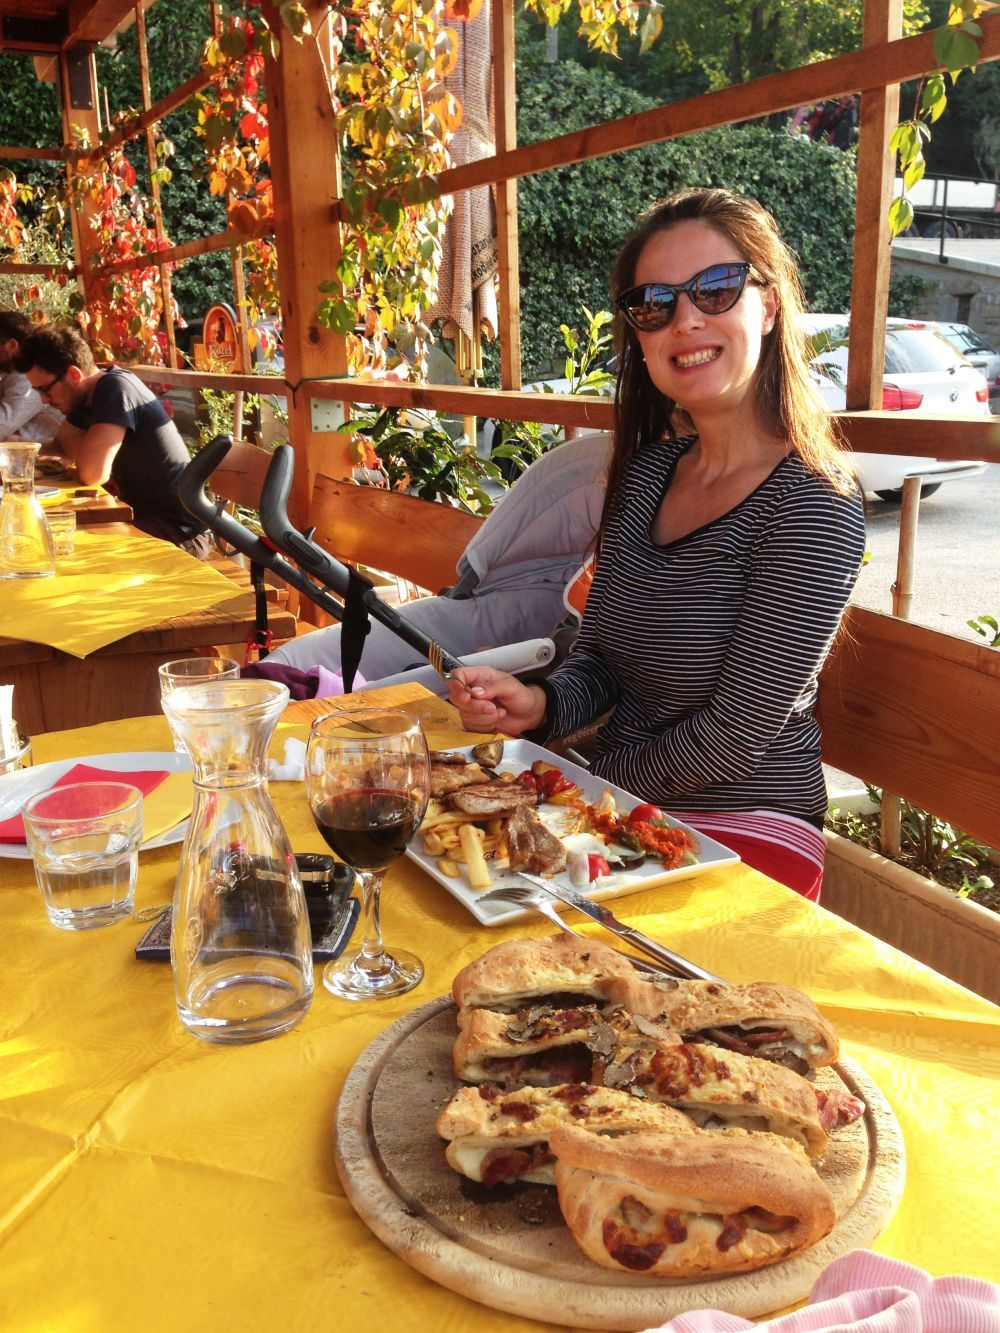 Enjoying ombolo with truffles at Gostilna Oljka in Vanganel (Koper).jpg